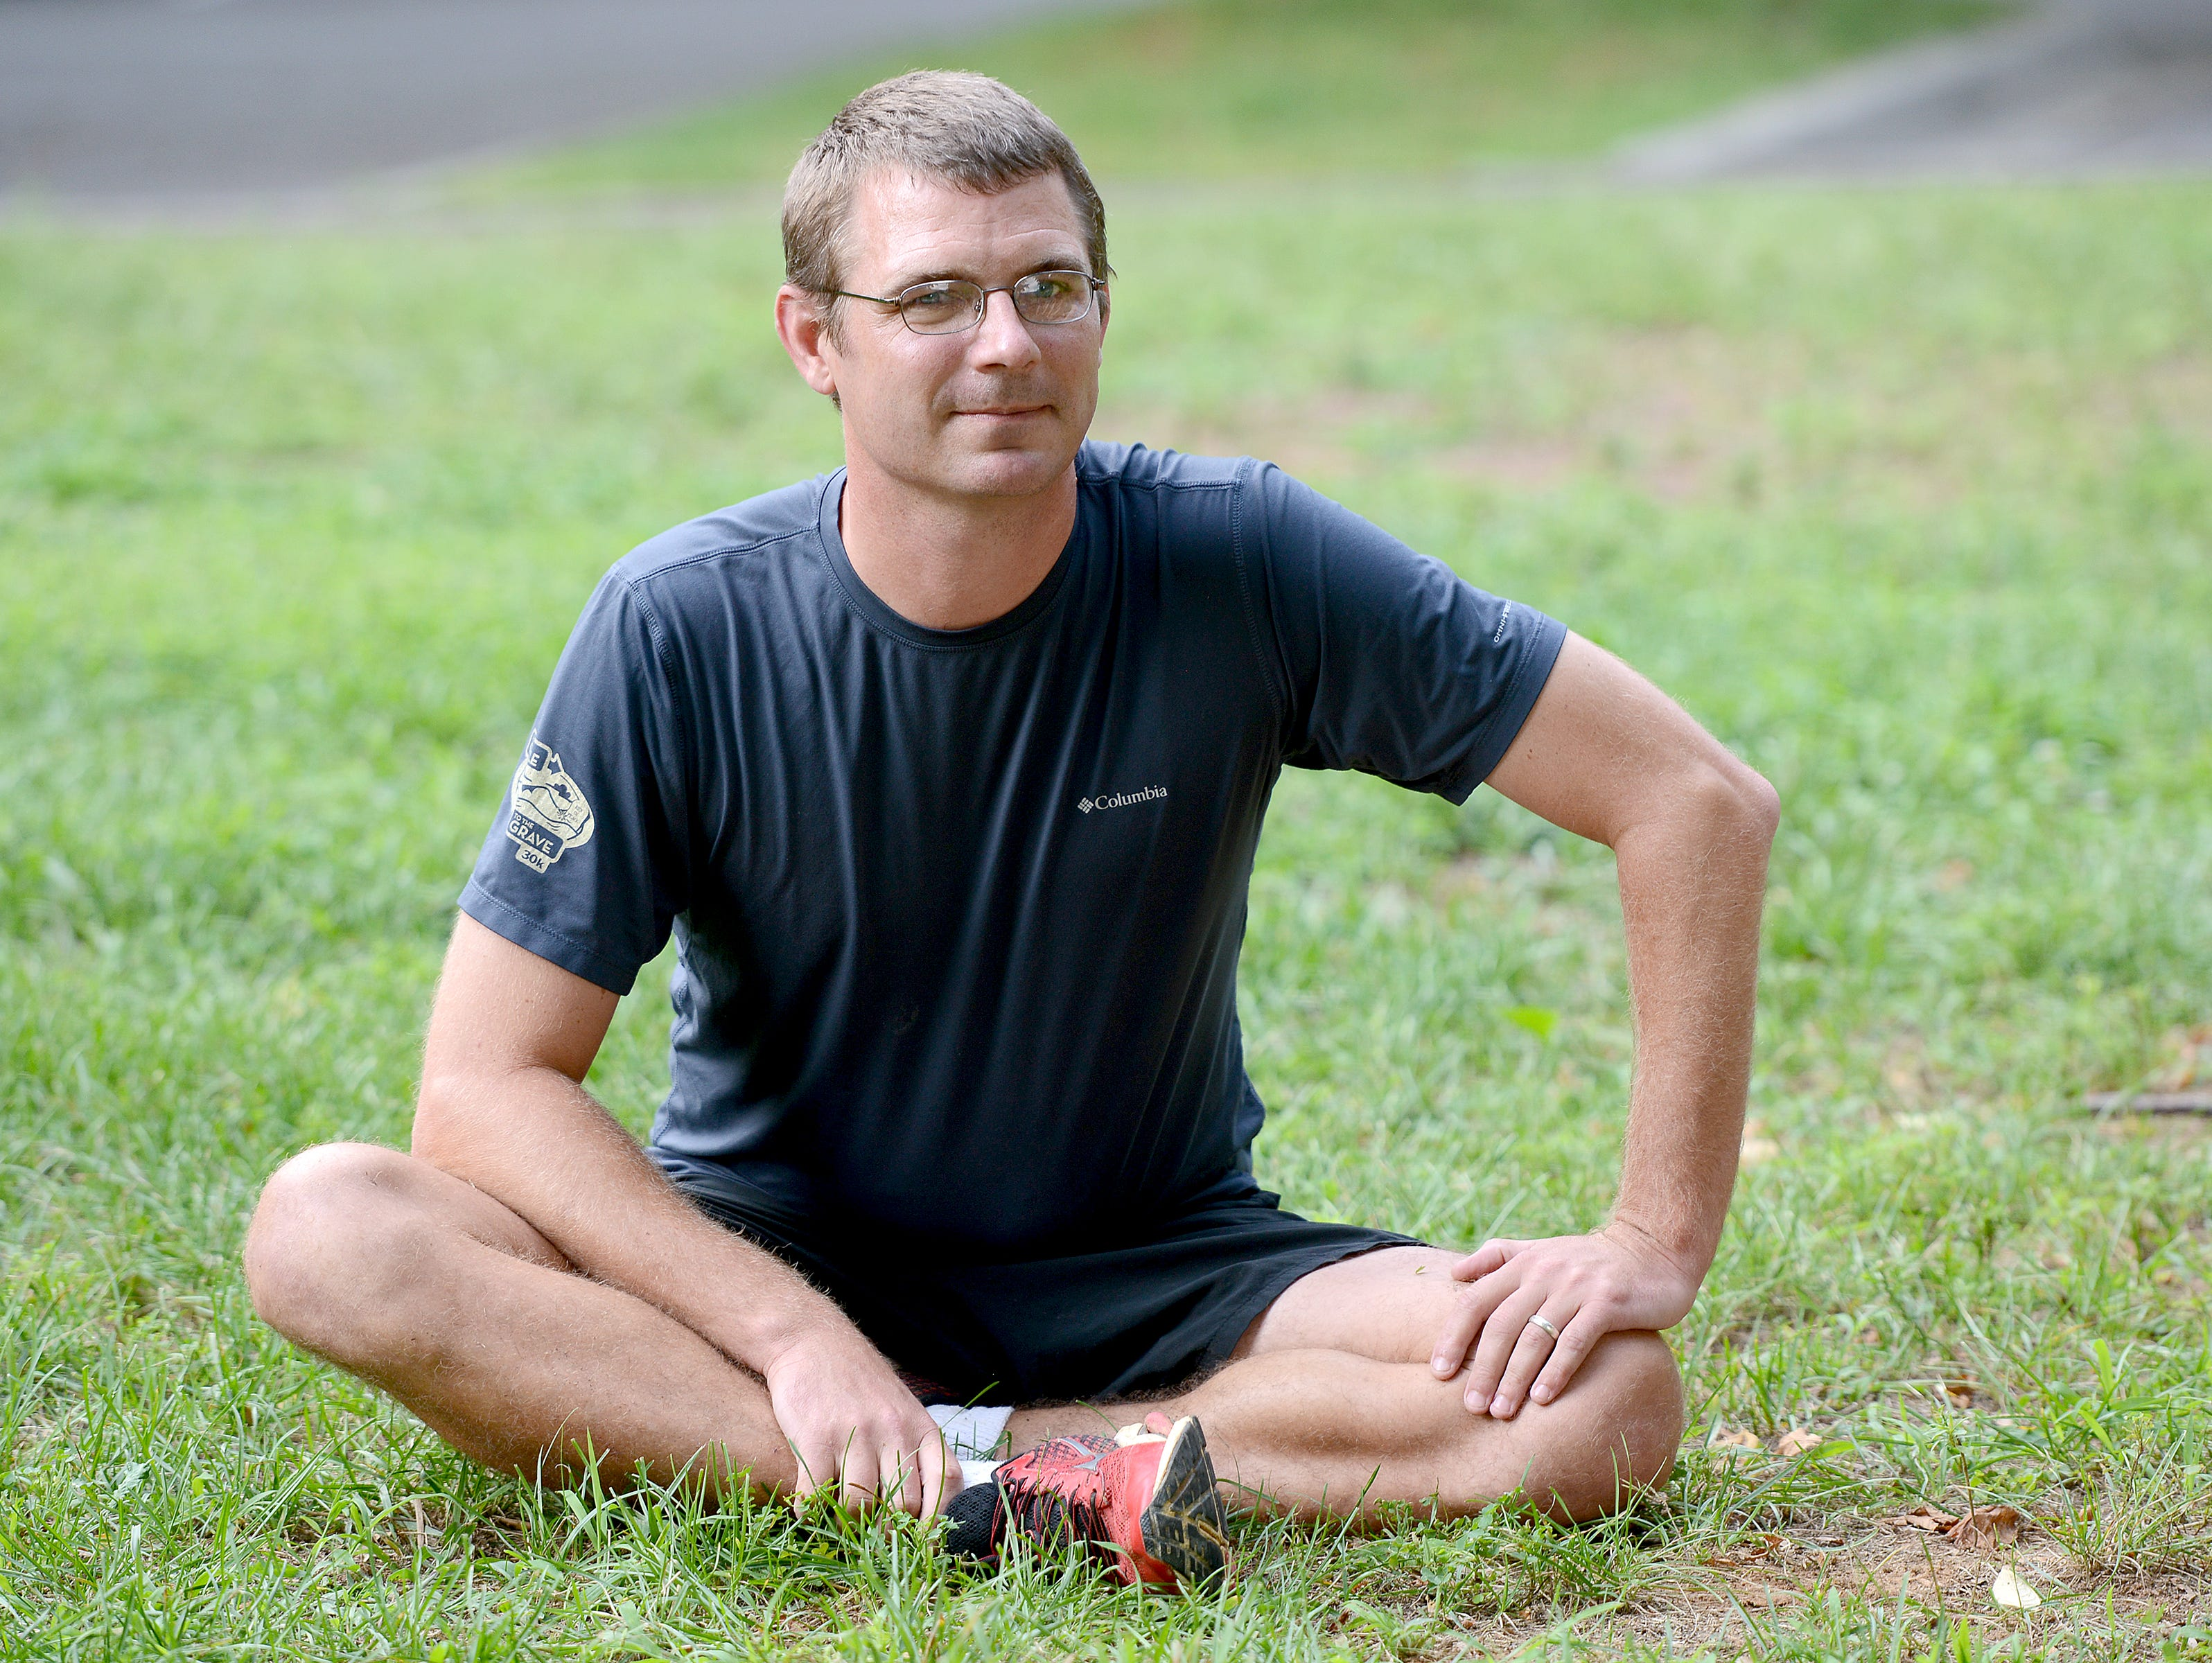 Roberson's new cross country coach Tom Ferguson stretches with the team before a workout at the North Carolina Arboretum on Thursday, Aug. 4, 2016. Ferguson took over for David Culp who stepped down from the role in December.